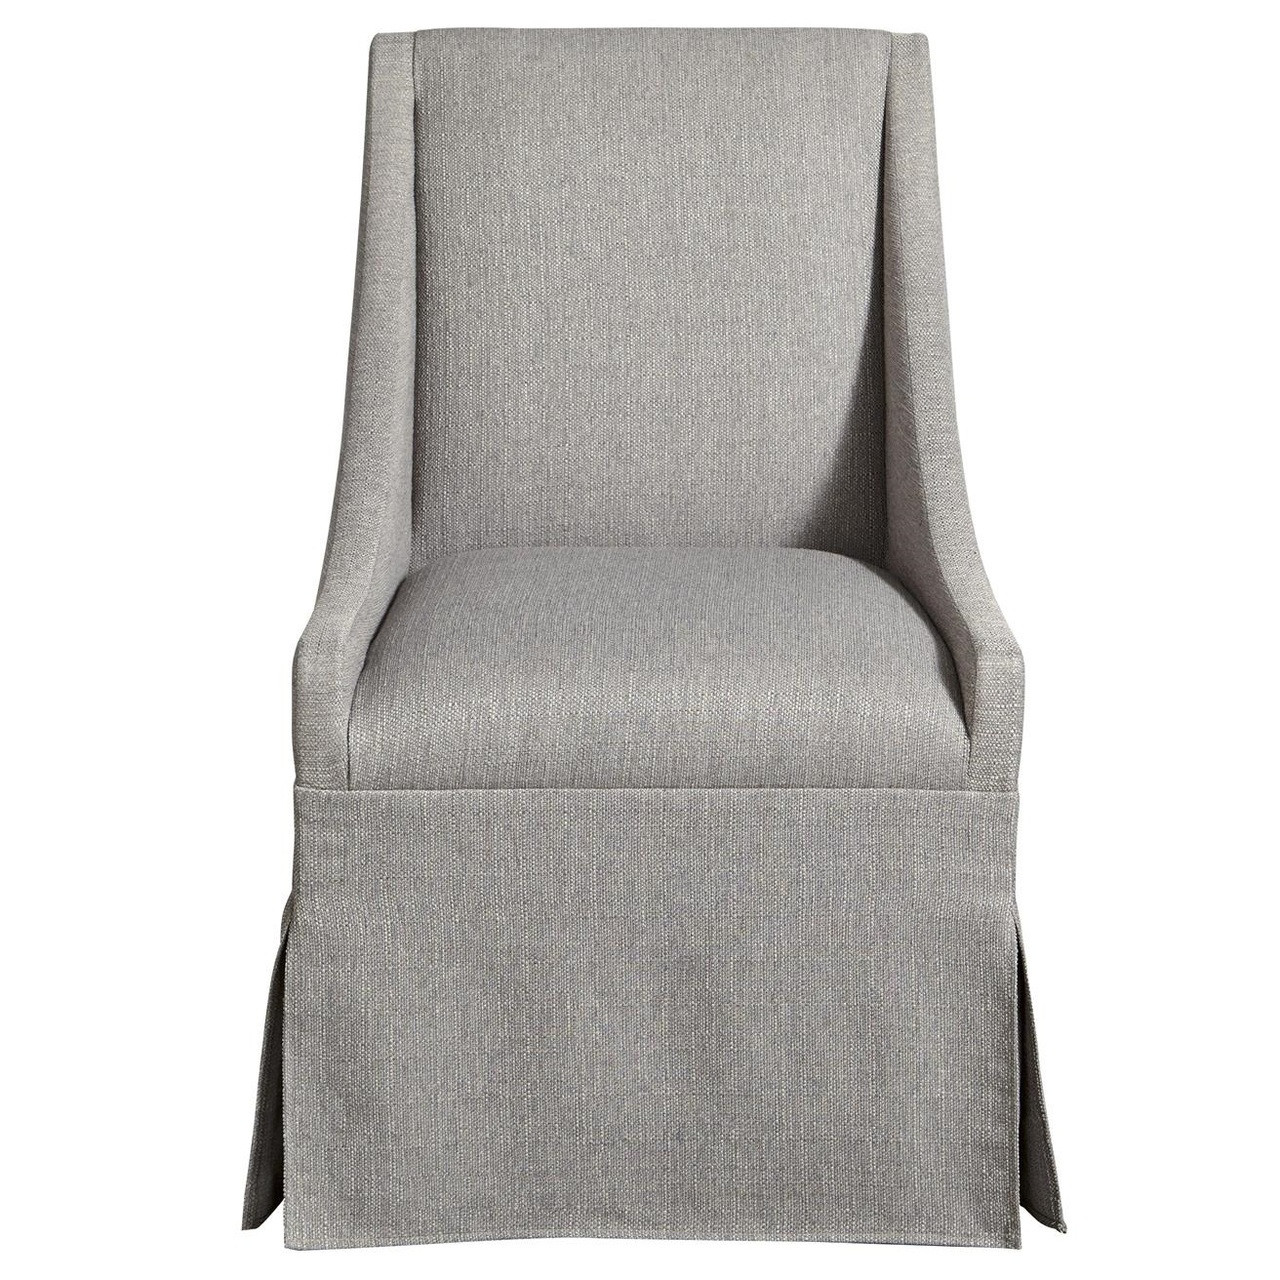 bedroom chair with skirt wedding covers rentals seattle townsend modern grey upholstered skirted dining